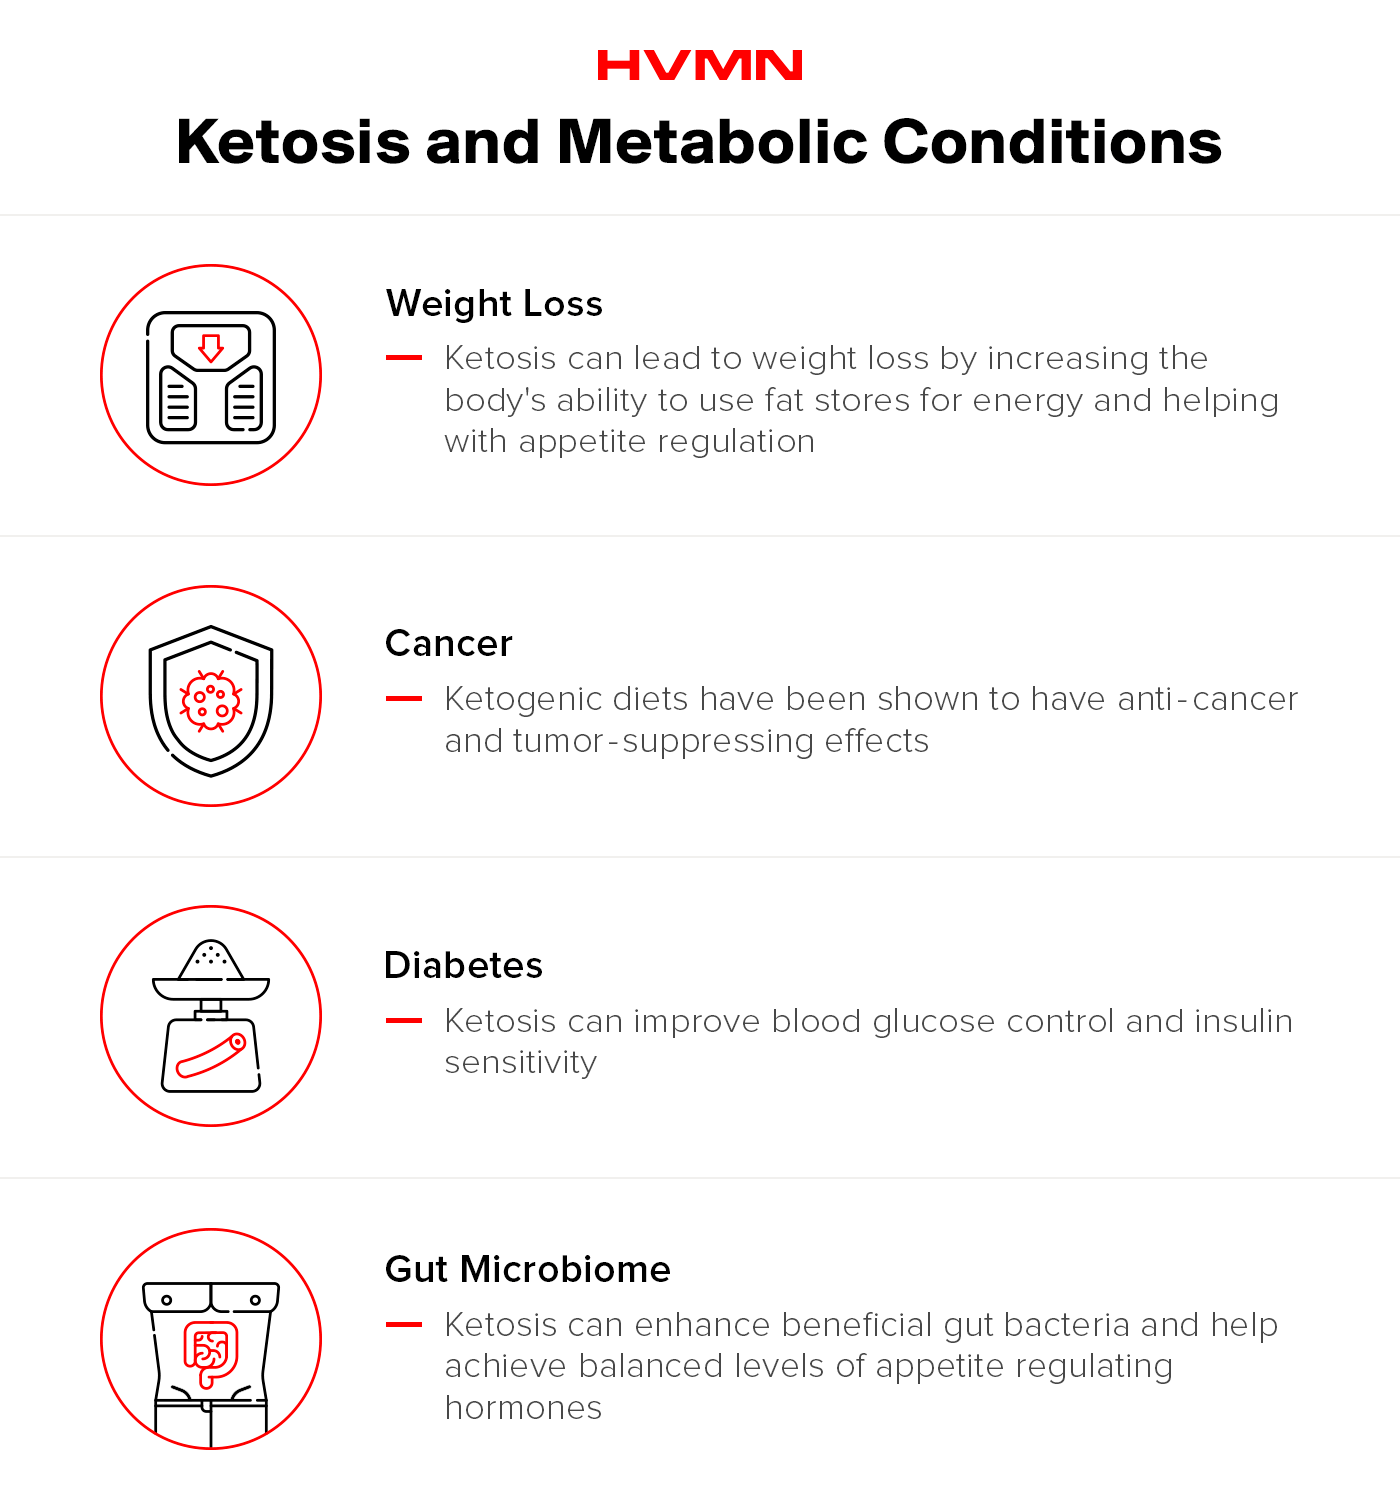 Applications of ketosis for metabolic conditions.